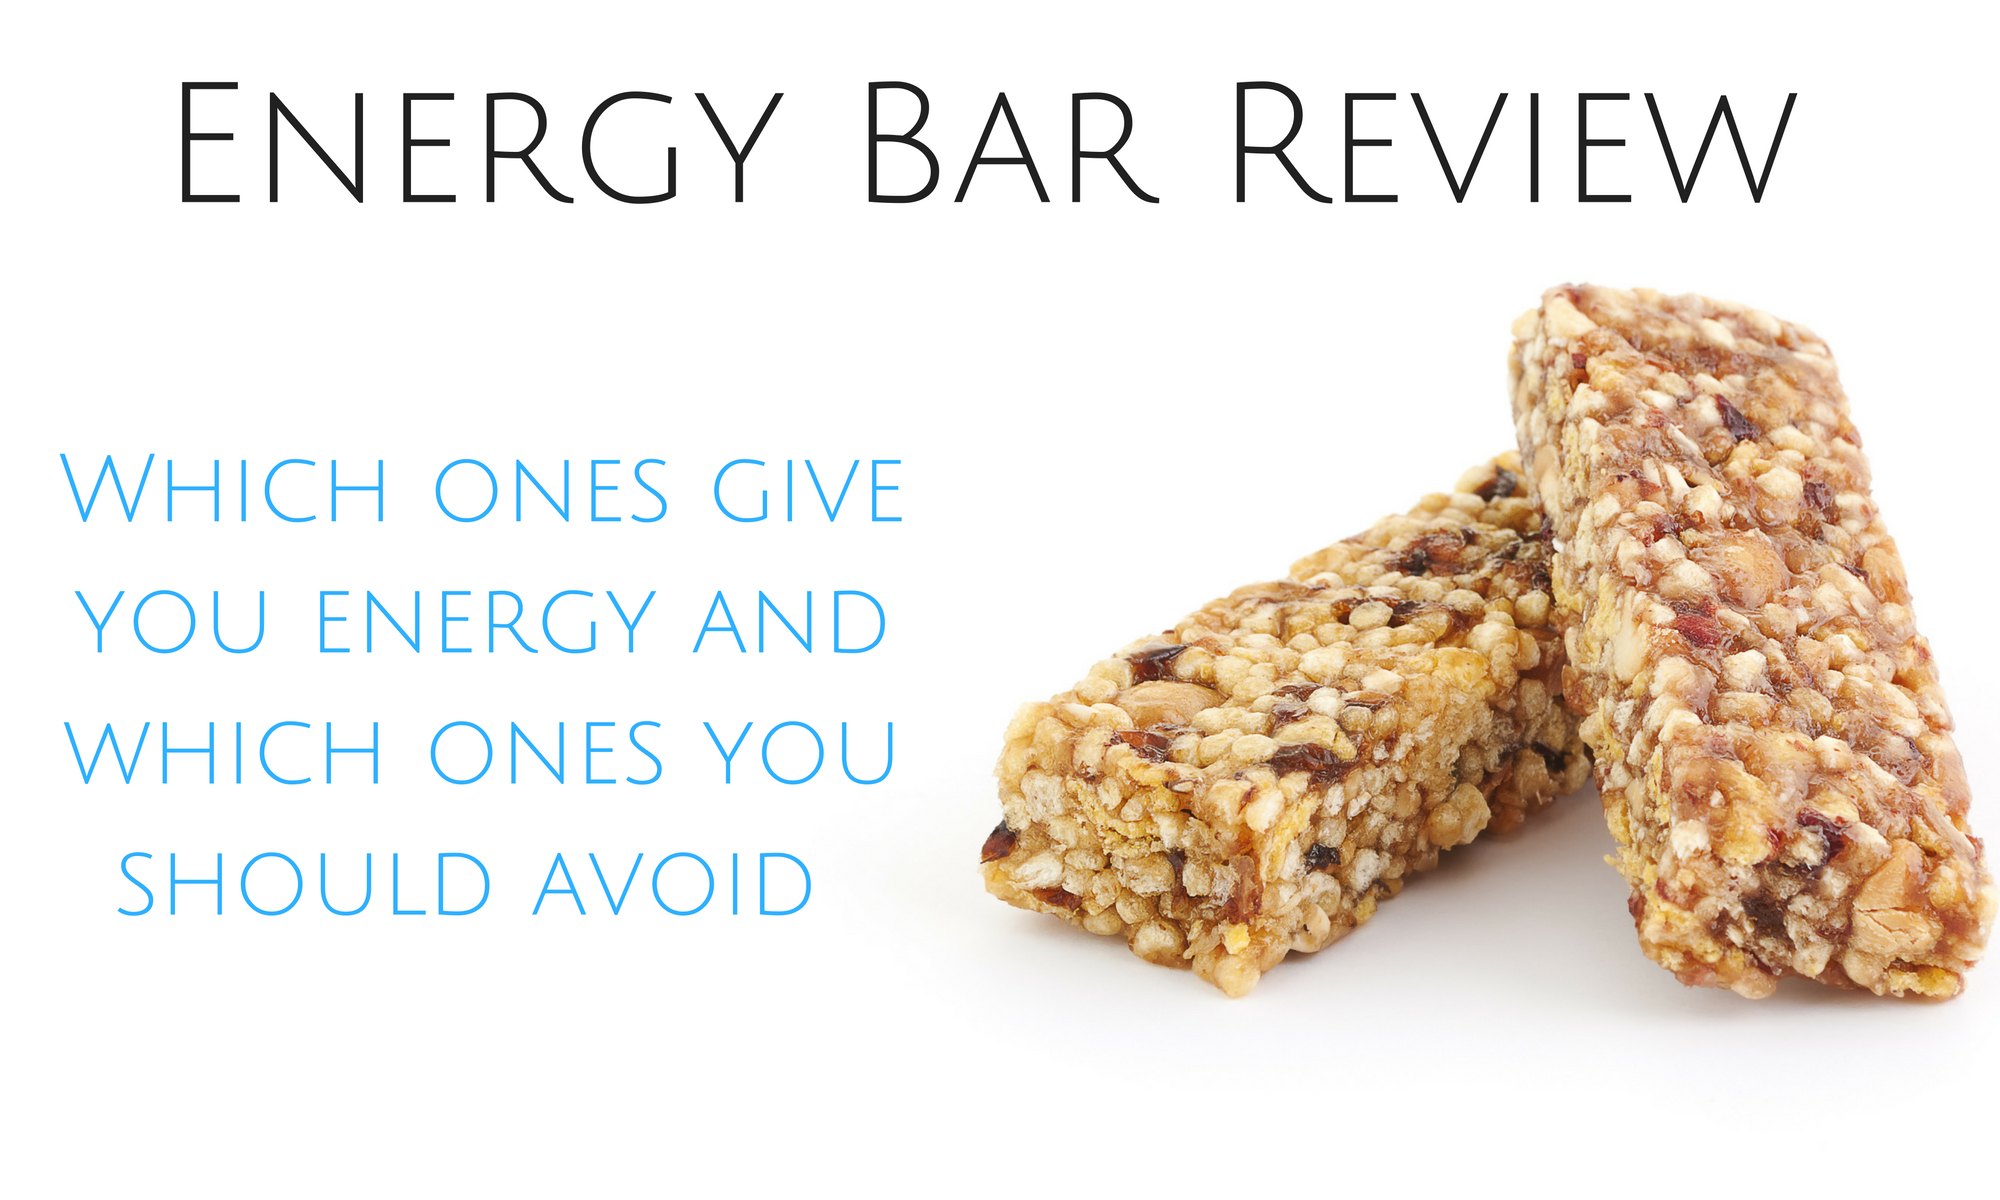 7bd6bf2f8db Energy Bar Review - The Best Energy Bars to Keep You .